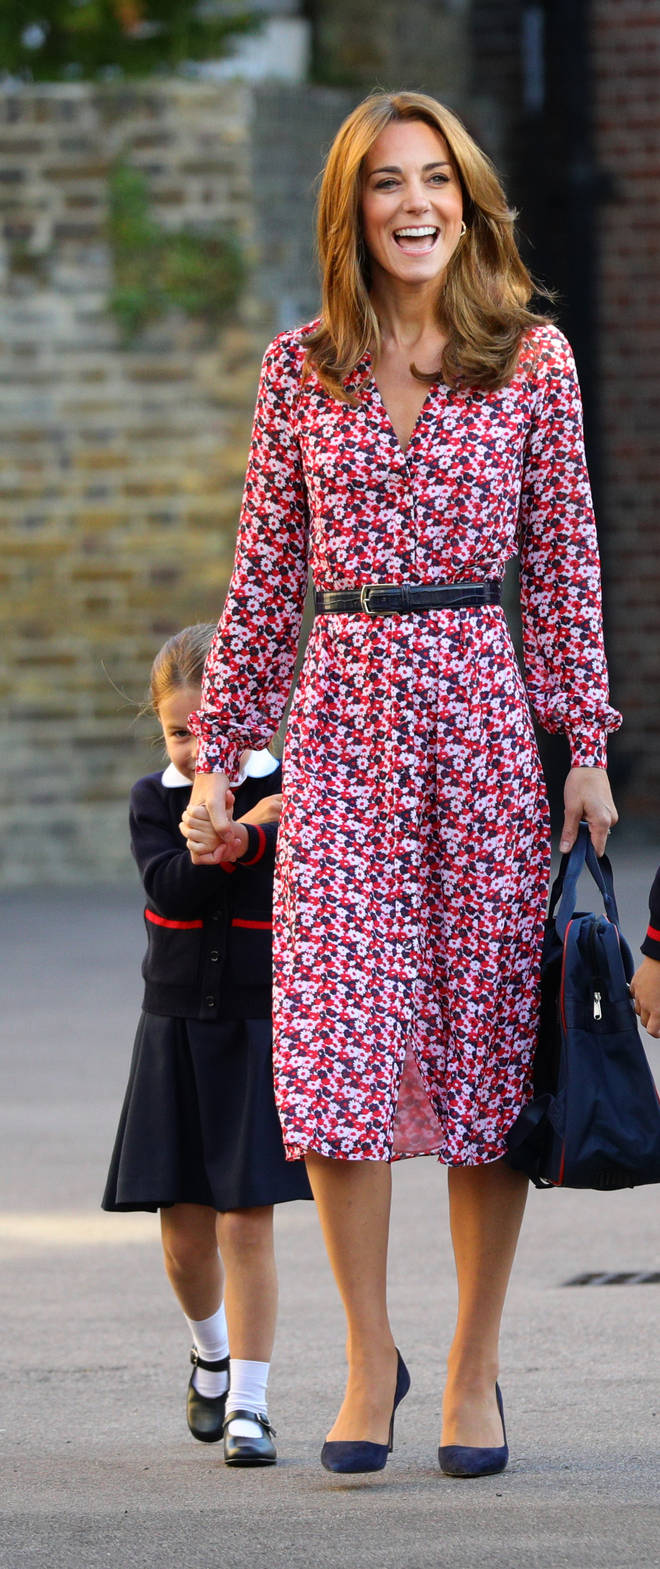 Princess Charlotte hid behind her mother as they approached the school